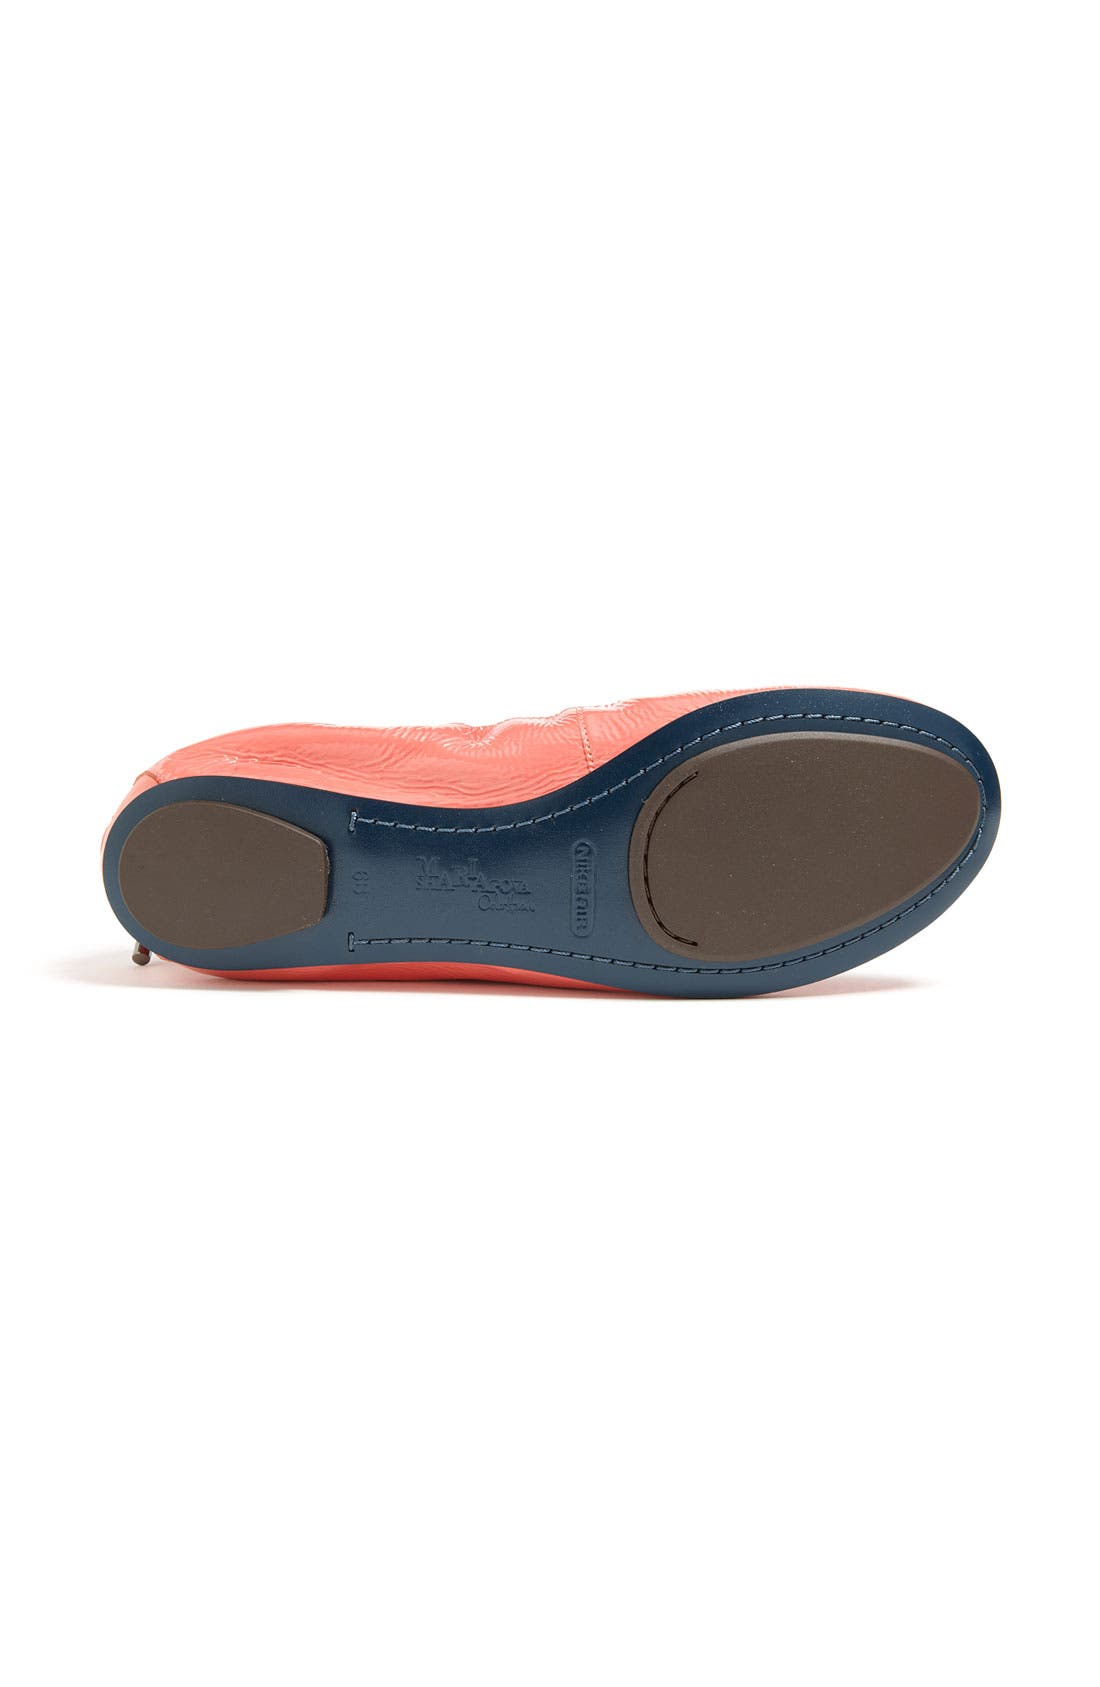 ,                             Maria Sharapova by Cole Haan 'Air Bacara' Flat,                             Alternate thumbnail 111, color,                             950